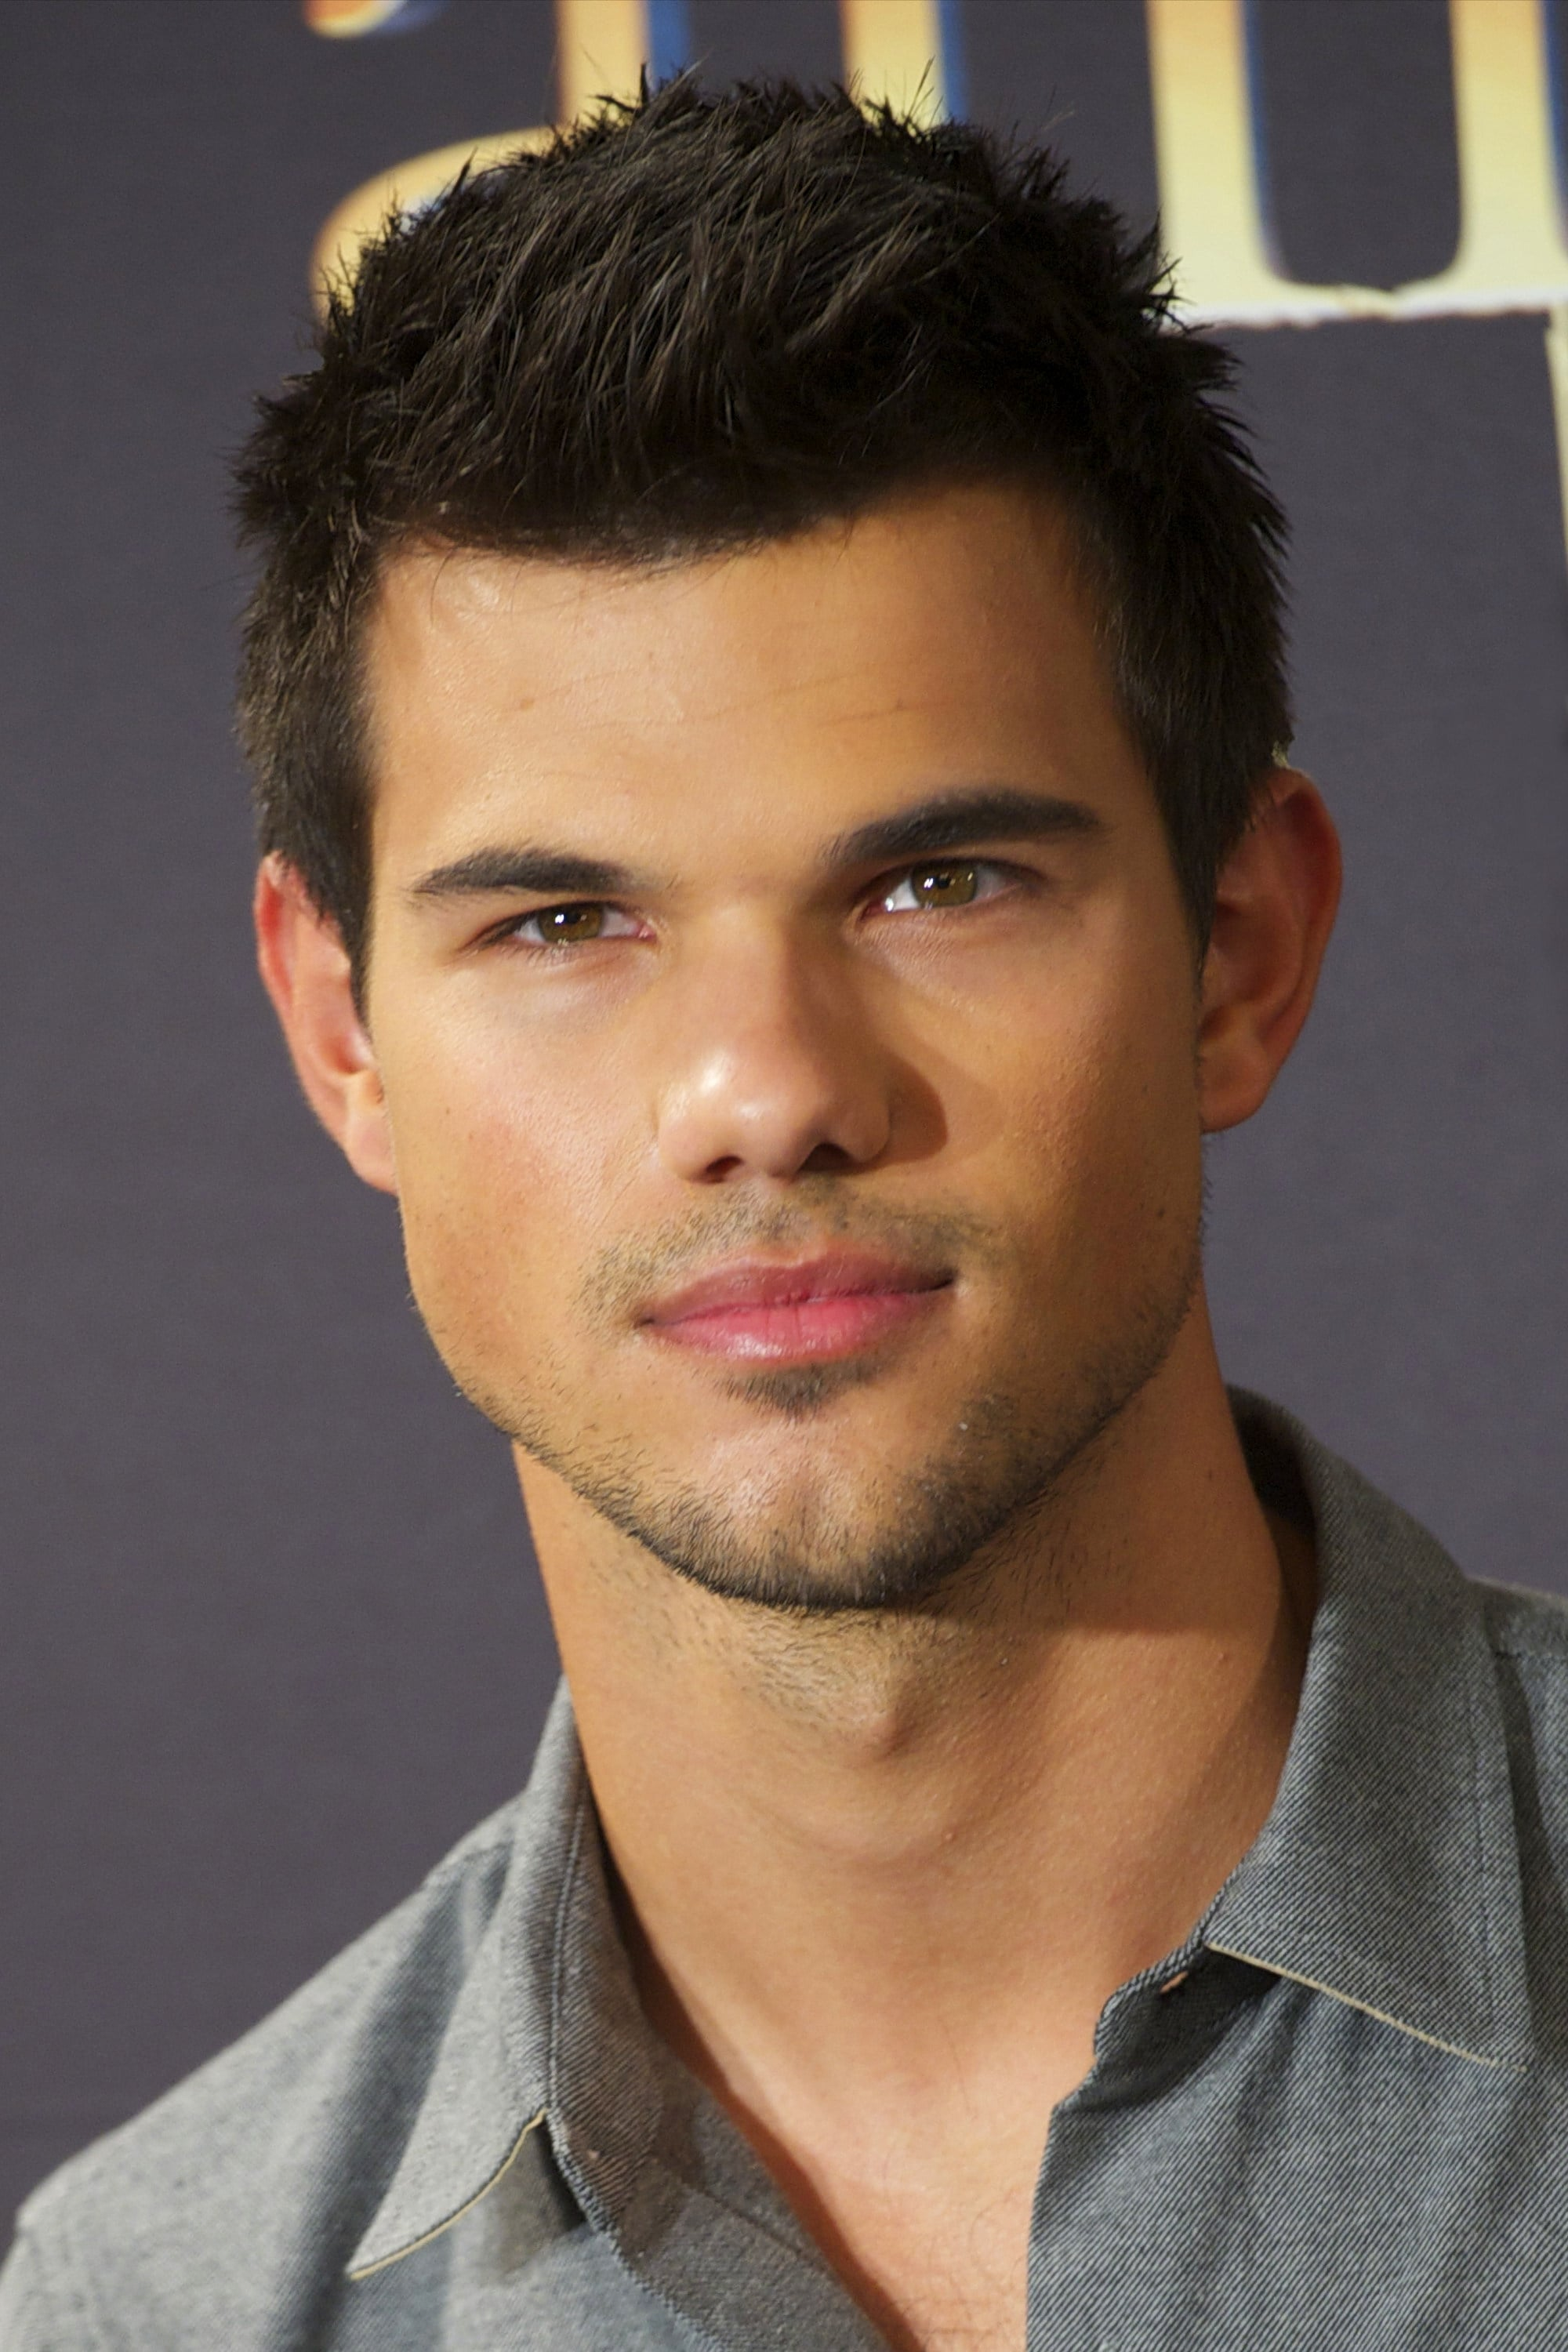 Taylor Lautner - Profile Images — The Movie Database (TMDb) Taylor Lautner